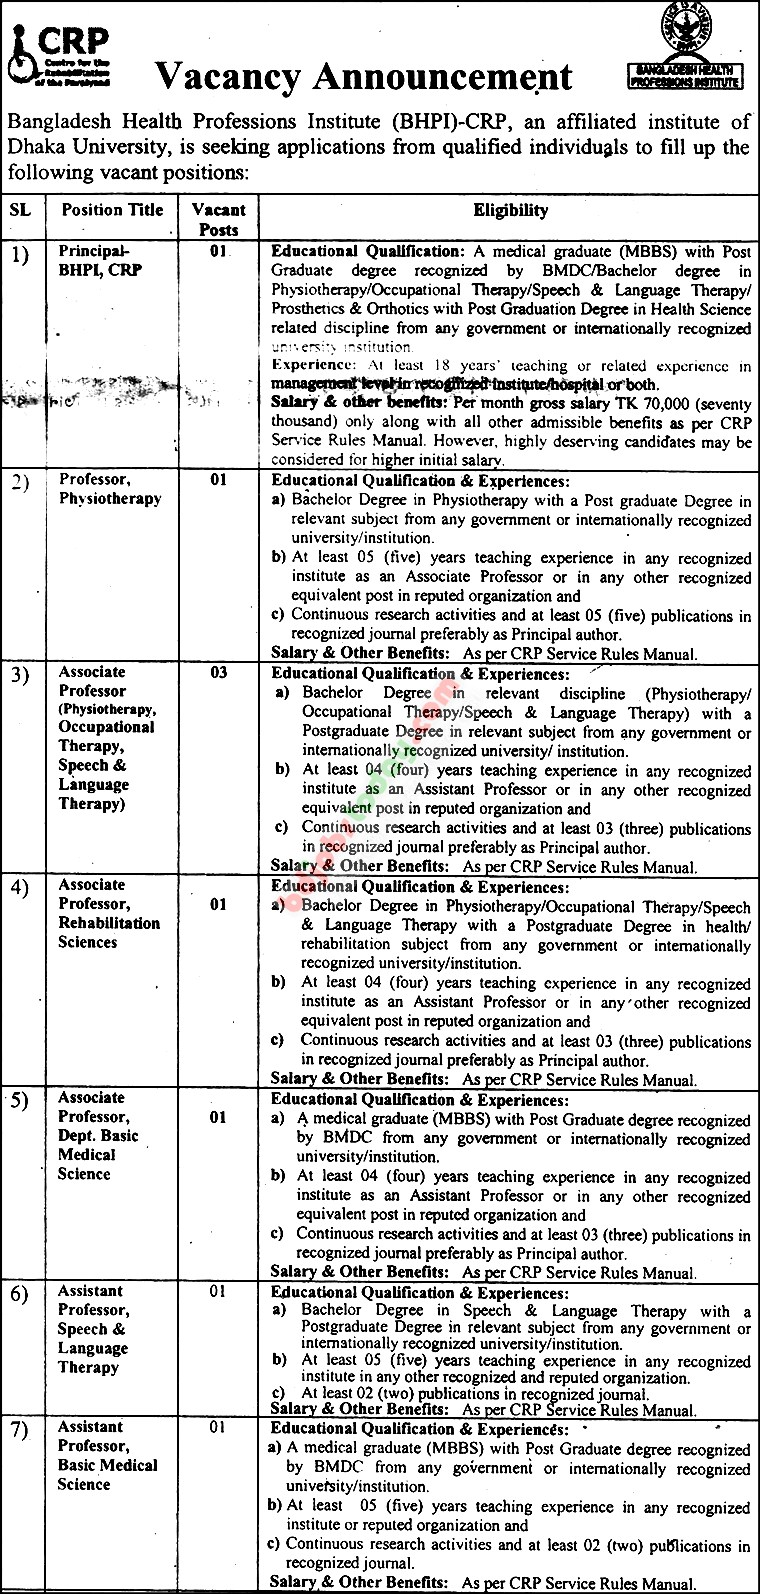 Bangladesh Health Professions Institute (BHPI)-CRP jobs